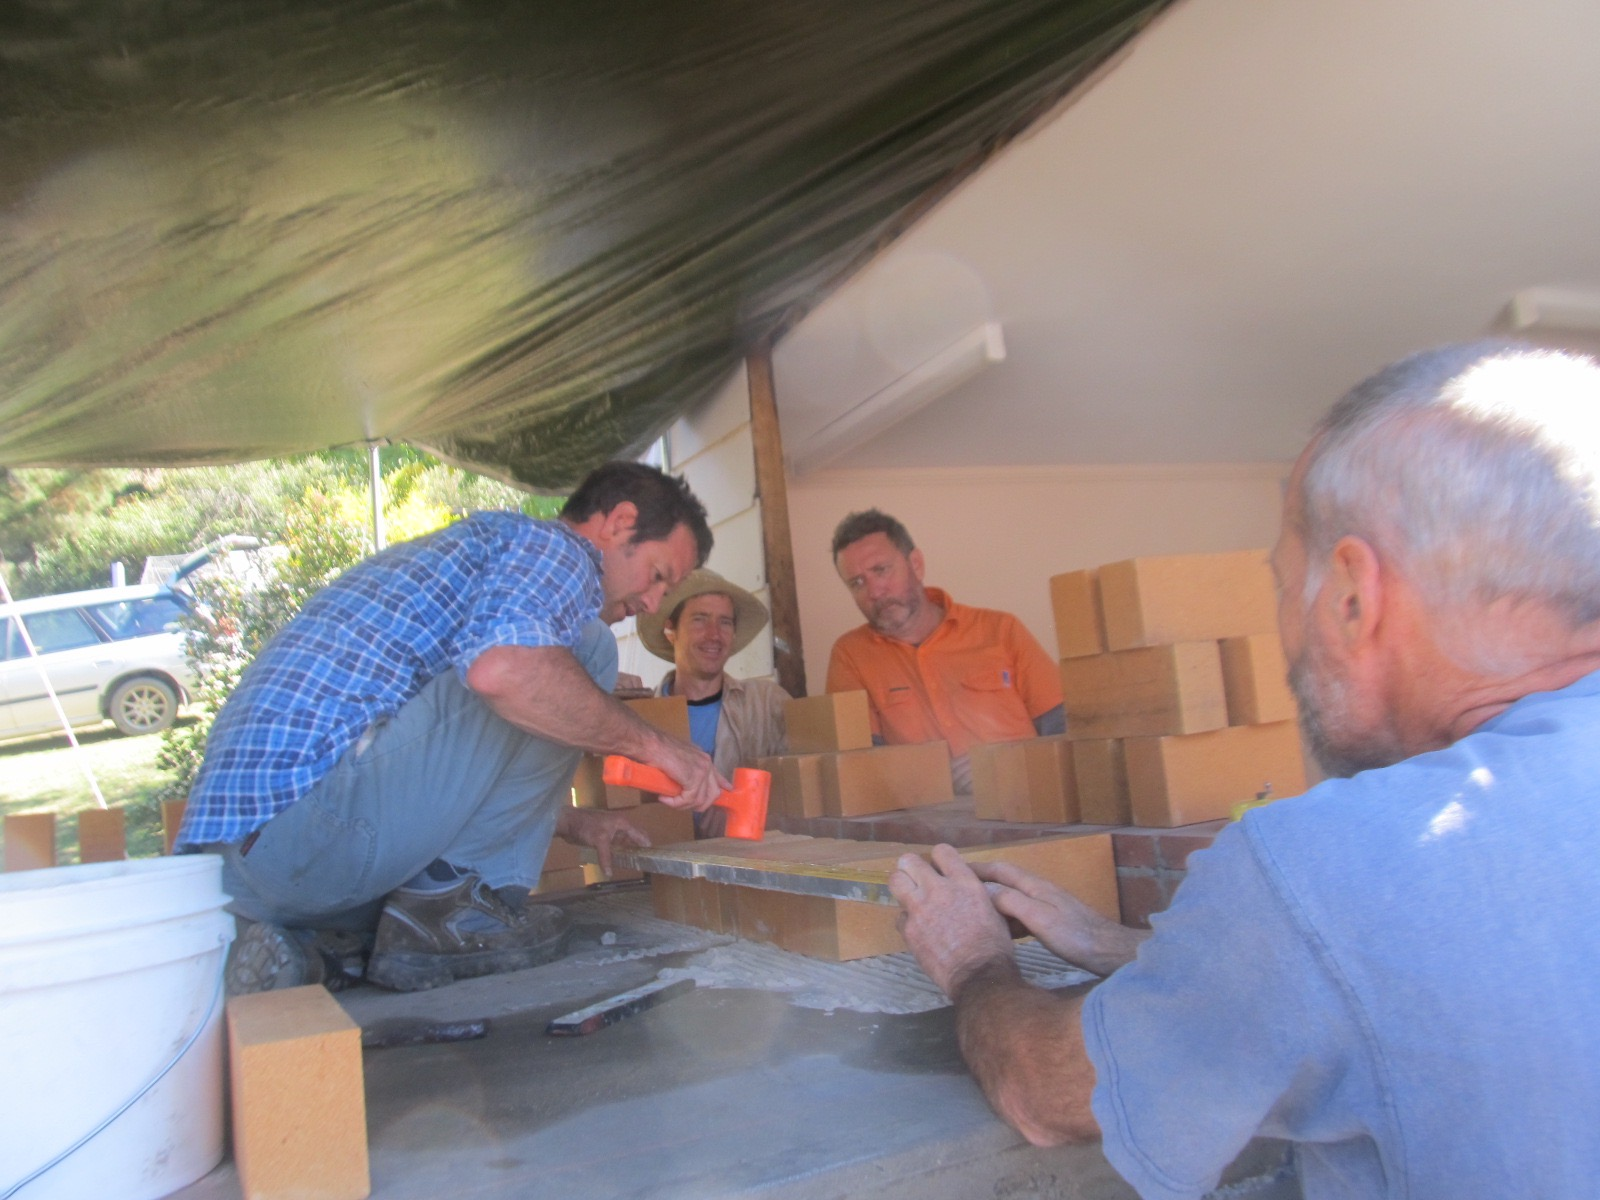 Damon, Graham, James and Les working on the hearth.